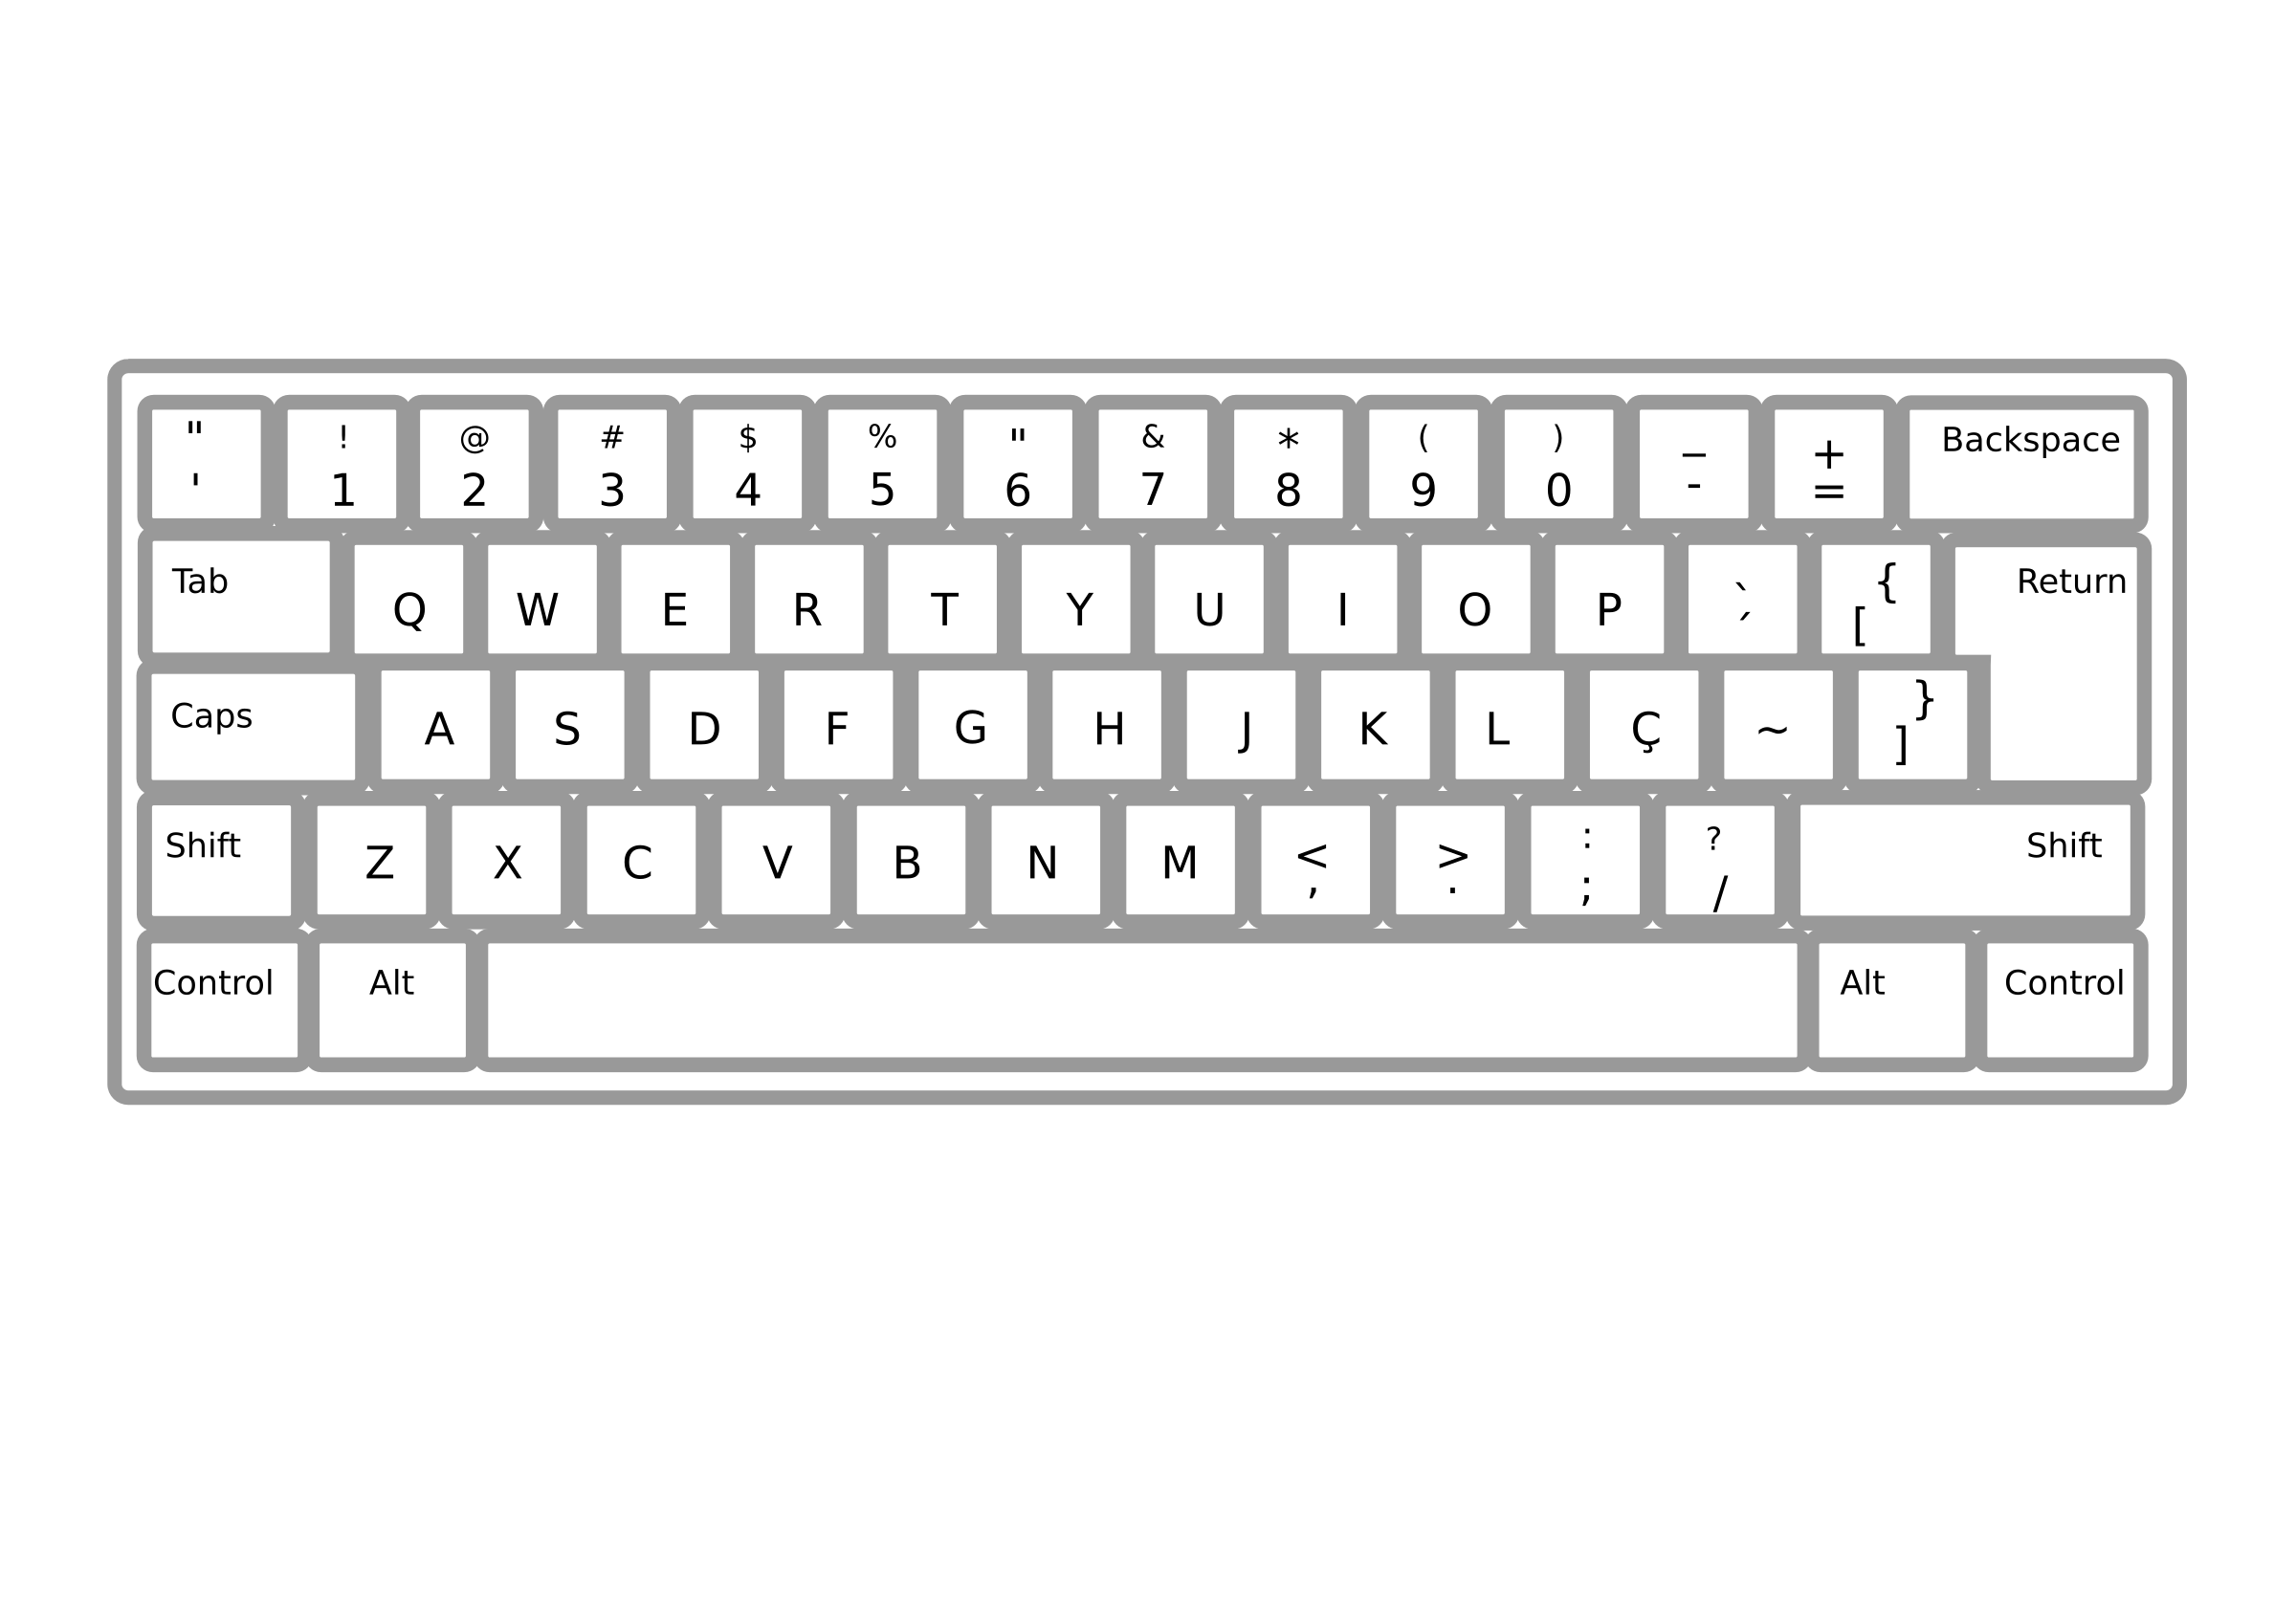 collection of images. Clipart computer keyboard